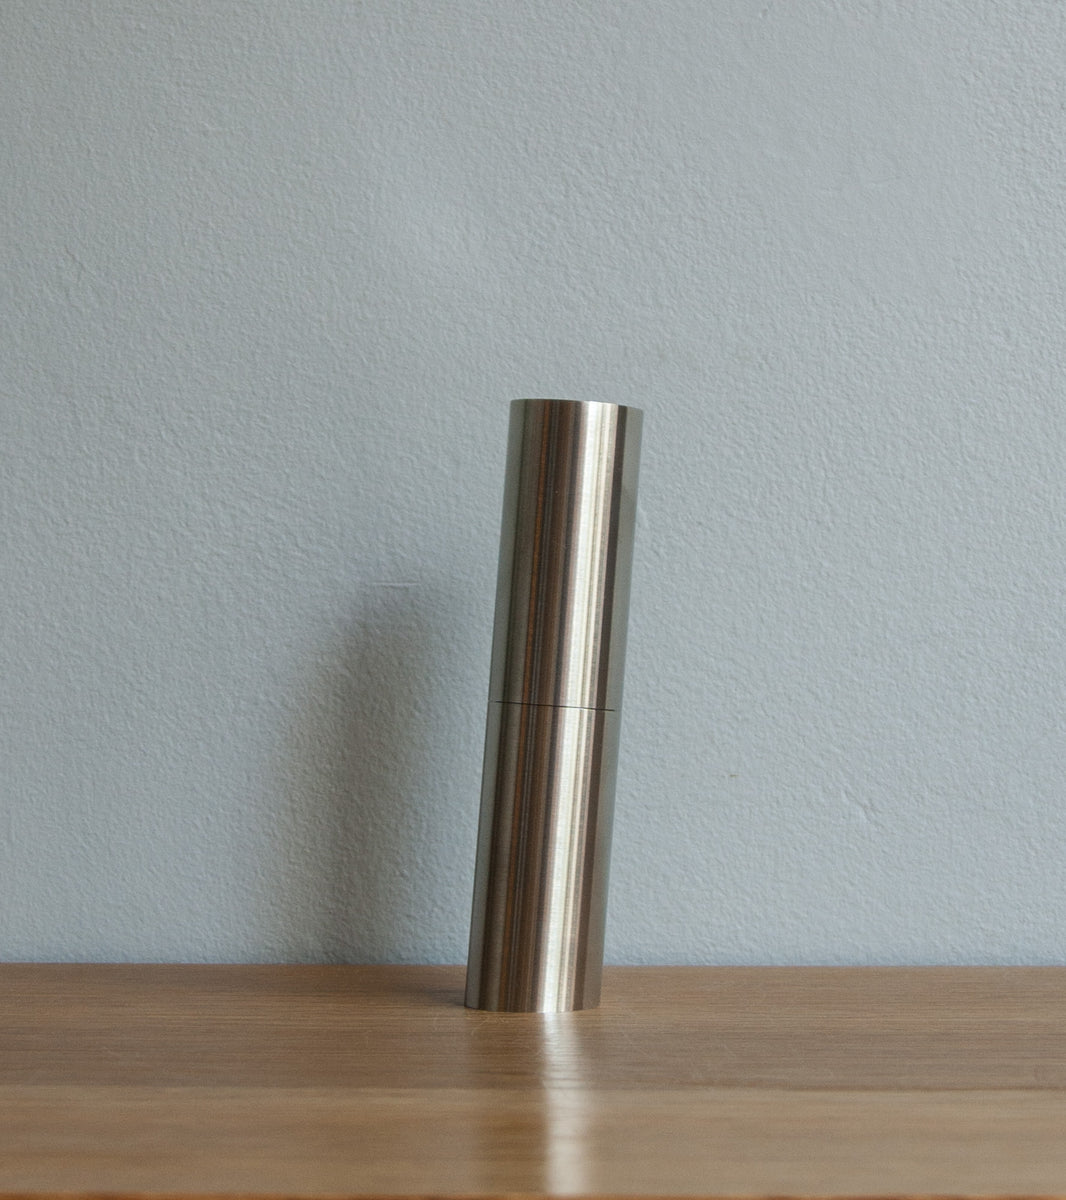 Italic Mill - Matt Nickel Plated Michael Anastassiades & Carl Auböck - Image 8